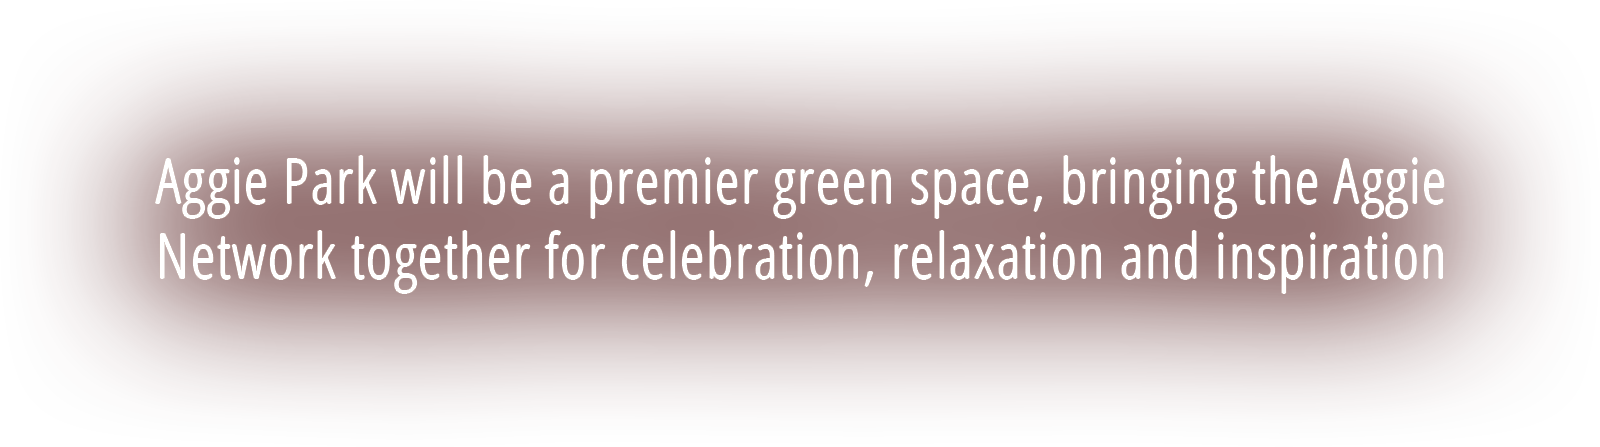 Aggie Park will be a premier green space, bringing the Aggie Network together for celebration, relaxation and inspiration